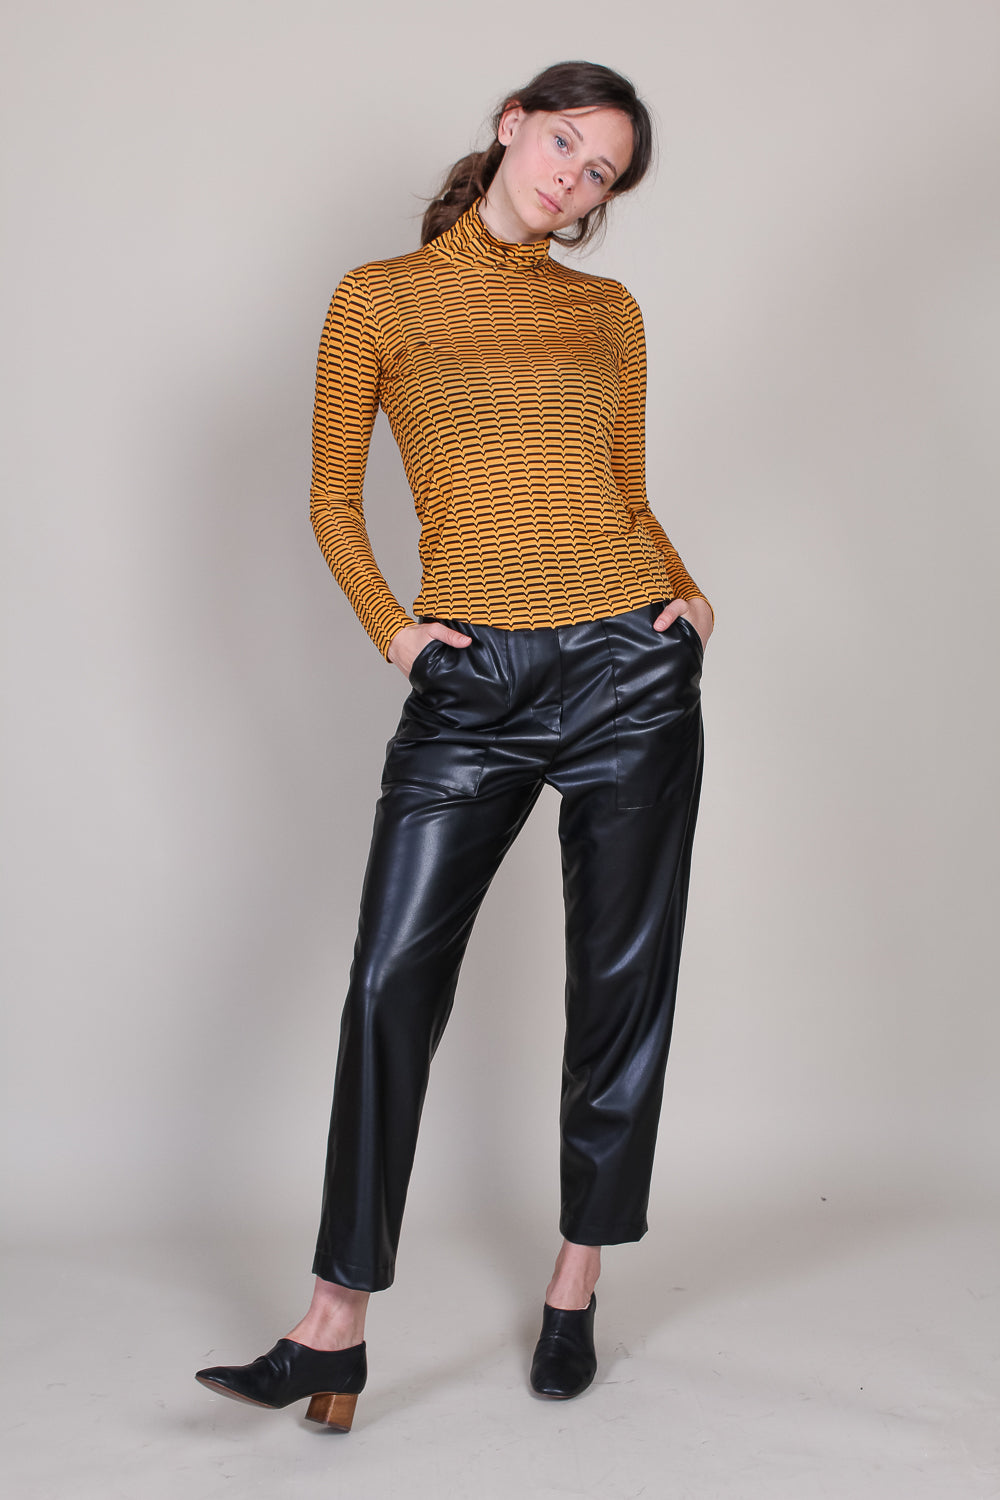 Scout Turtleneck in Gold/Brown Cassini